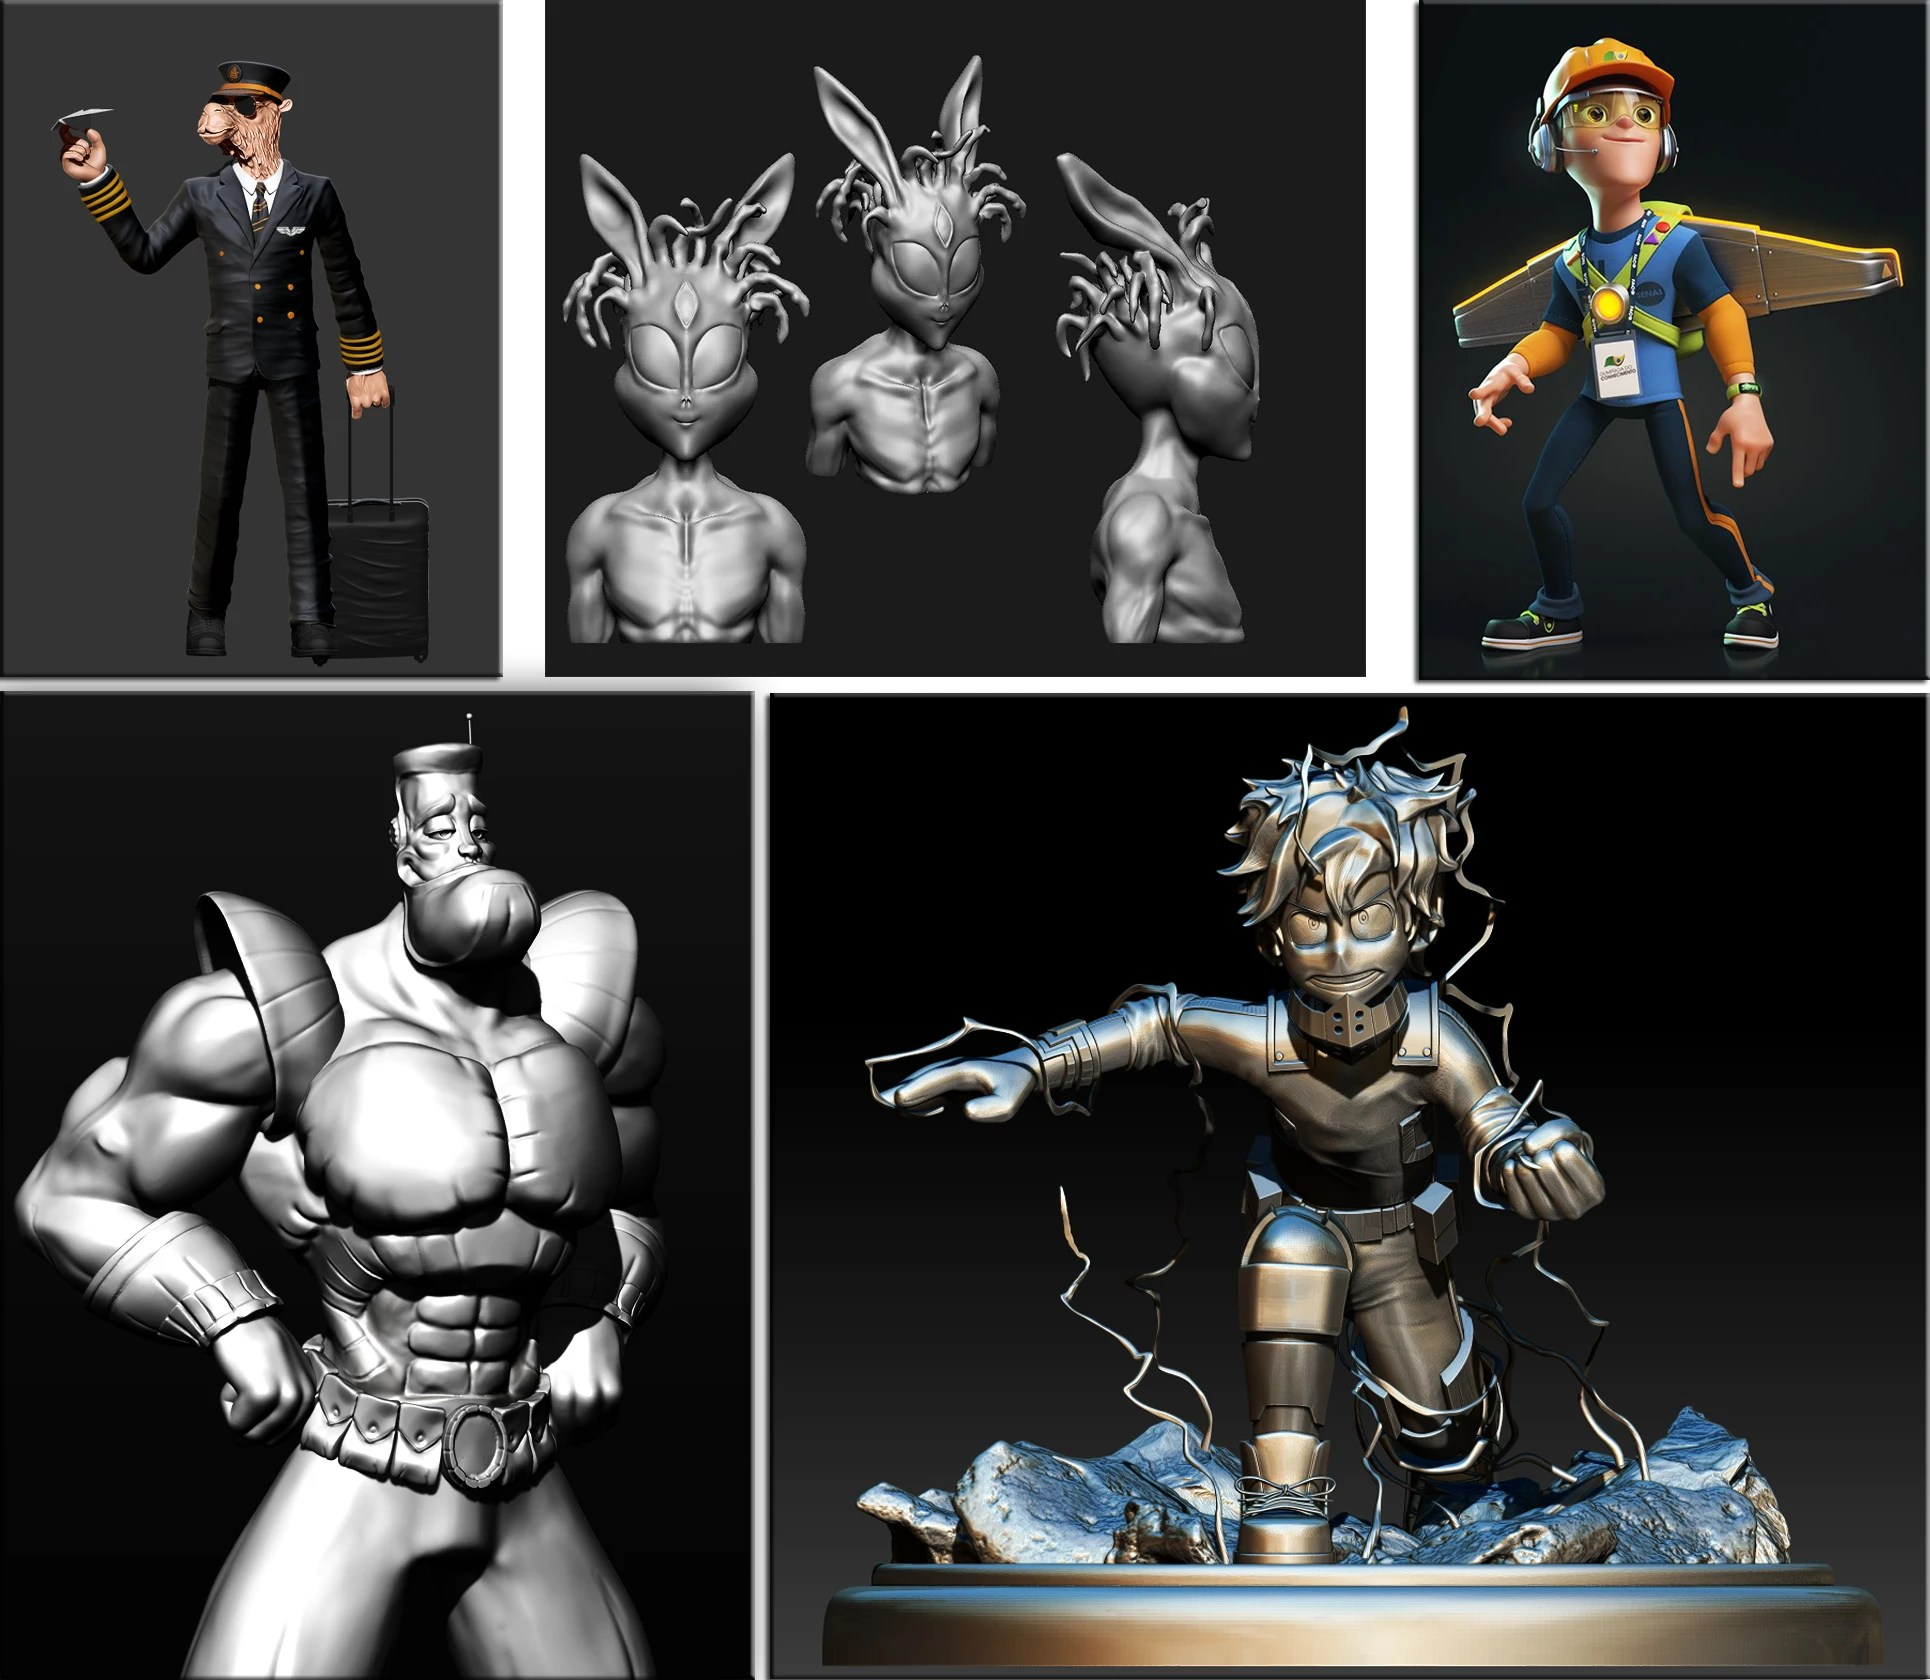 3d Models For Animation 3d Models For Game Animation 3d Printing Or Texturing